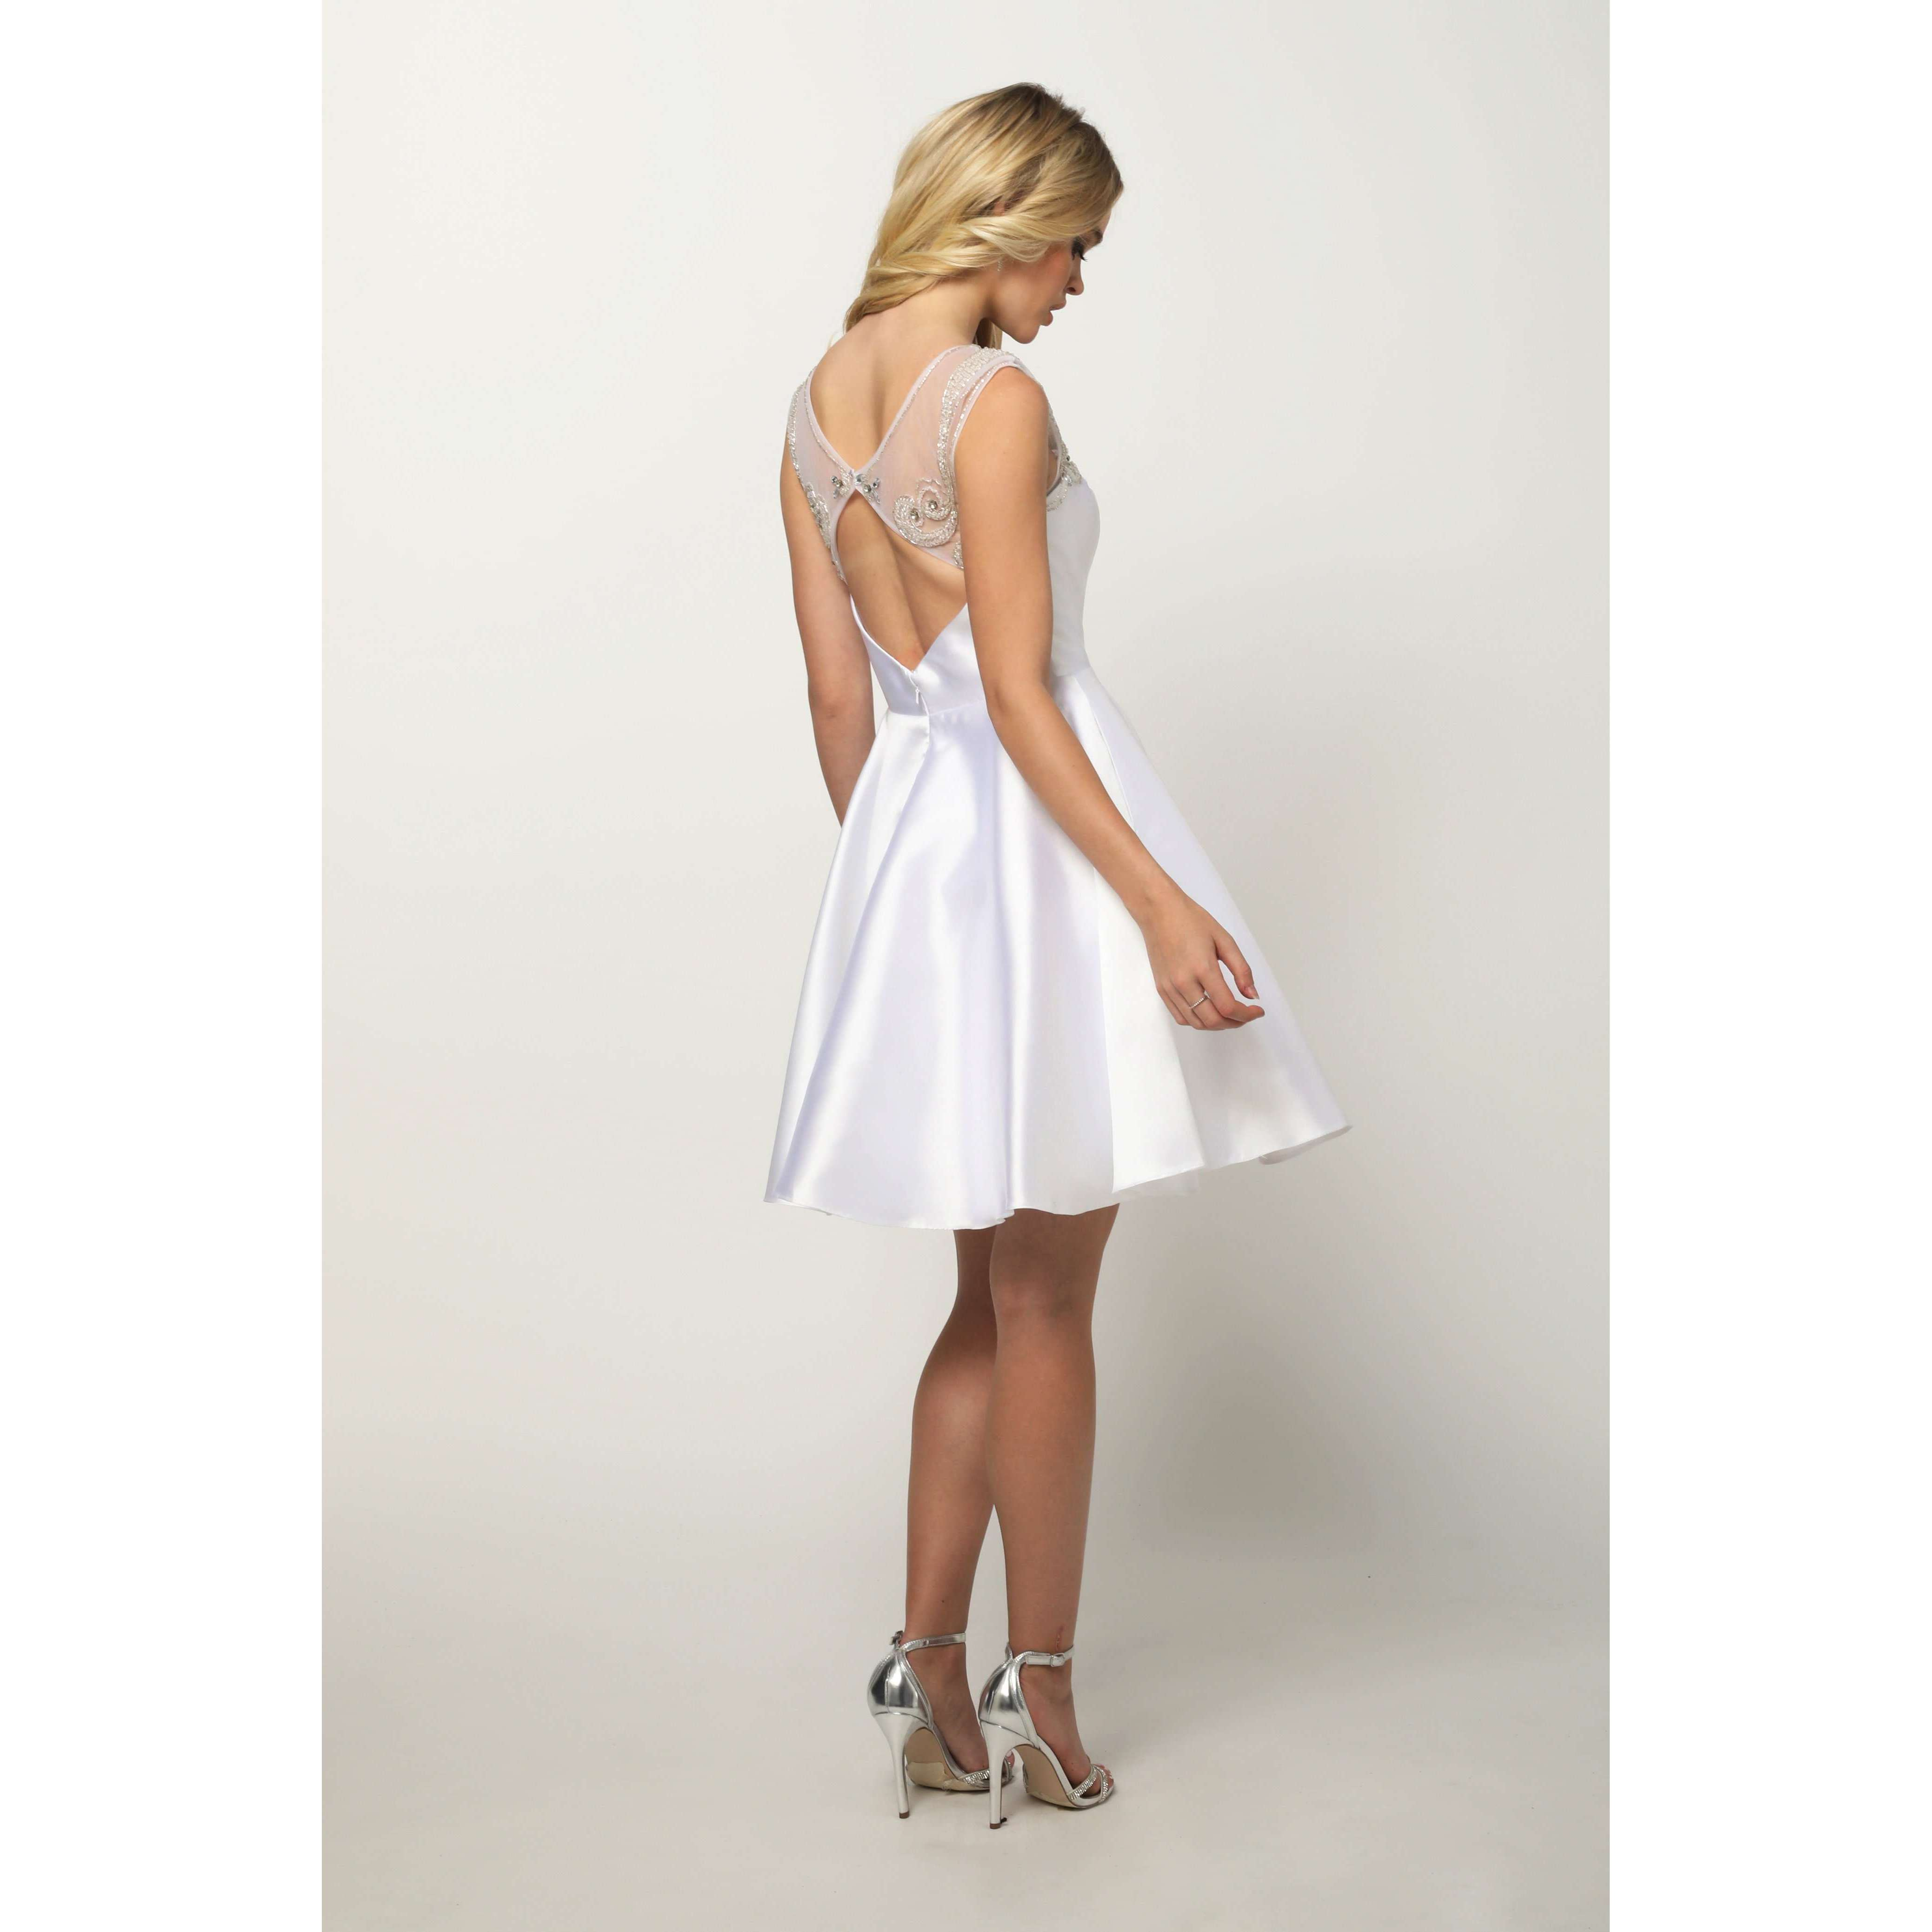 783W - Julietdresses